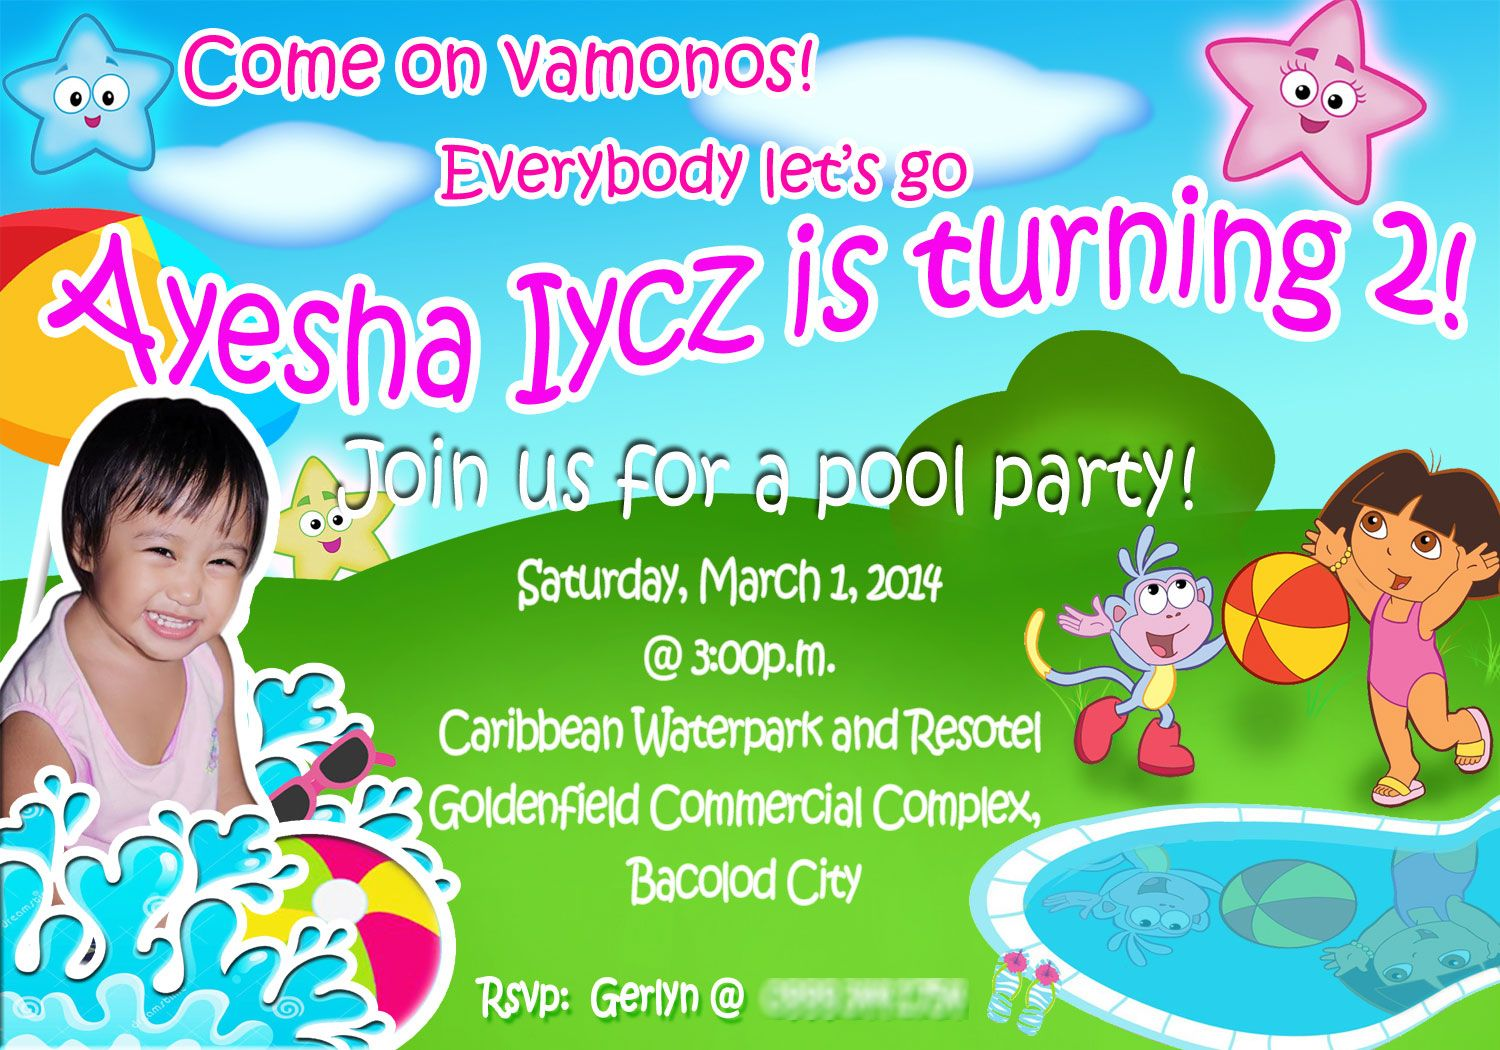 Birthday Invitation Size 3r C Ayesha B Day For Inquiries Please Email Me At Salanapmarkgmail